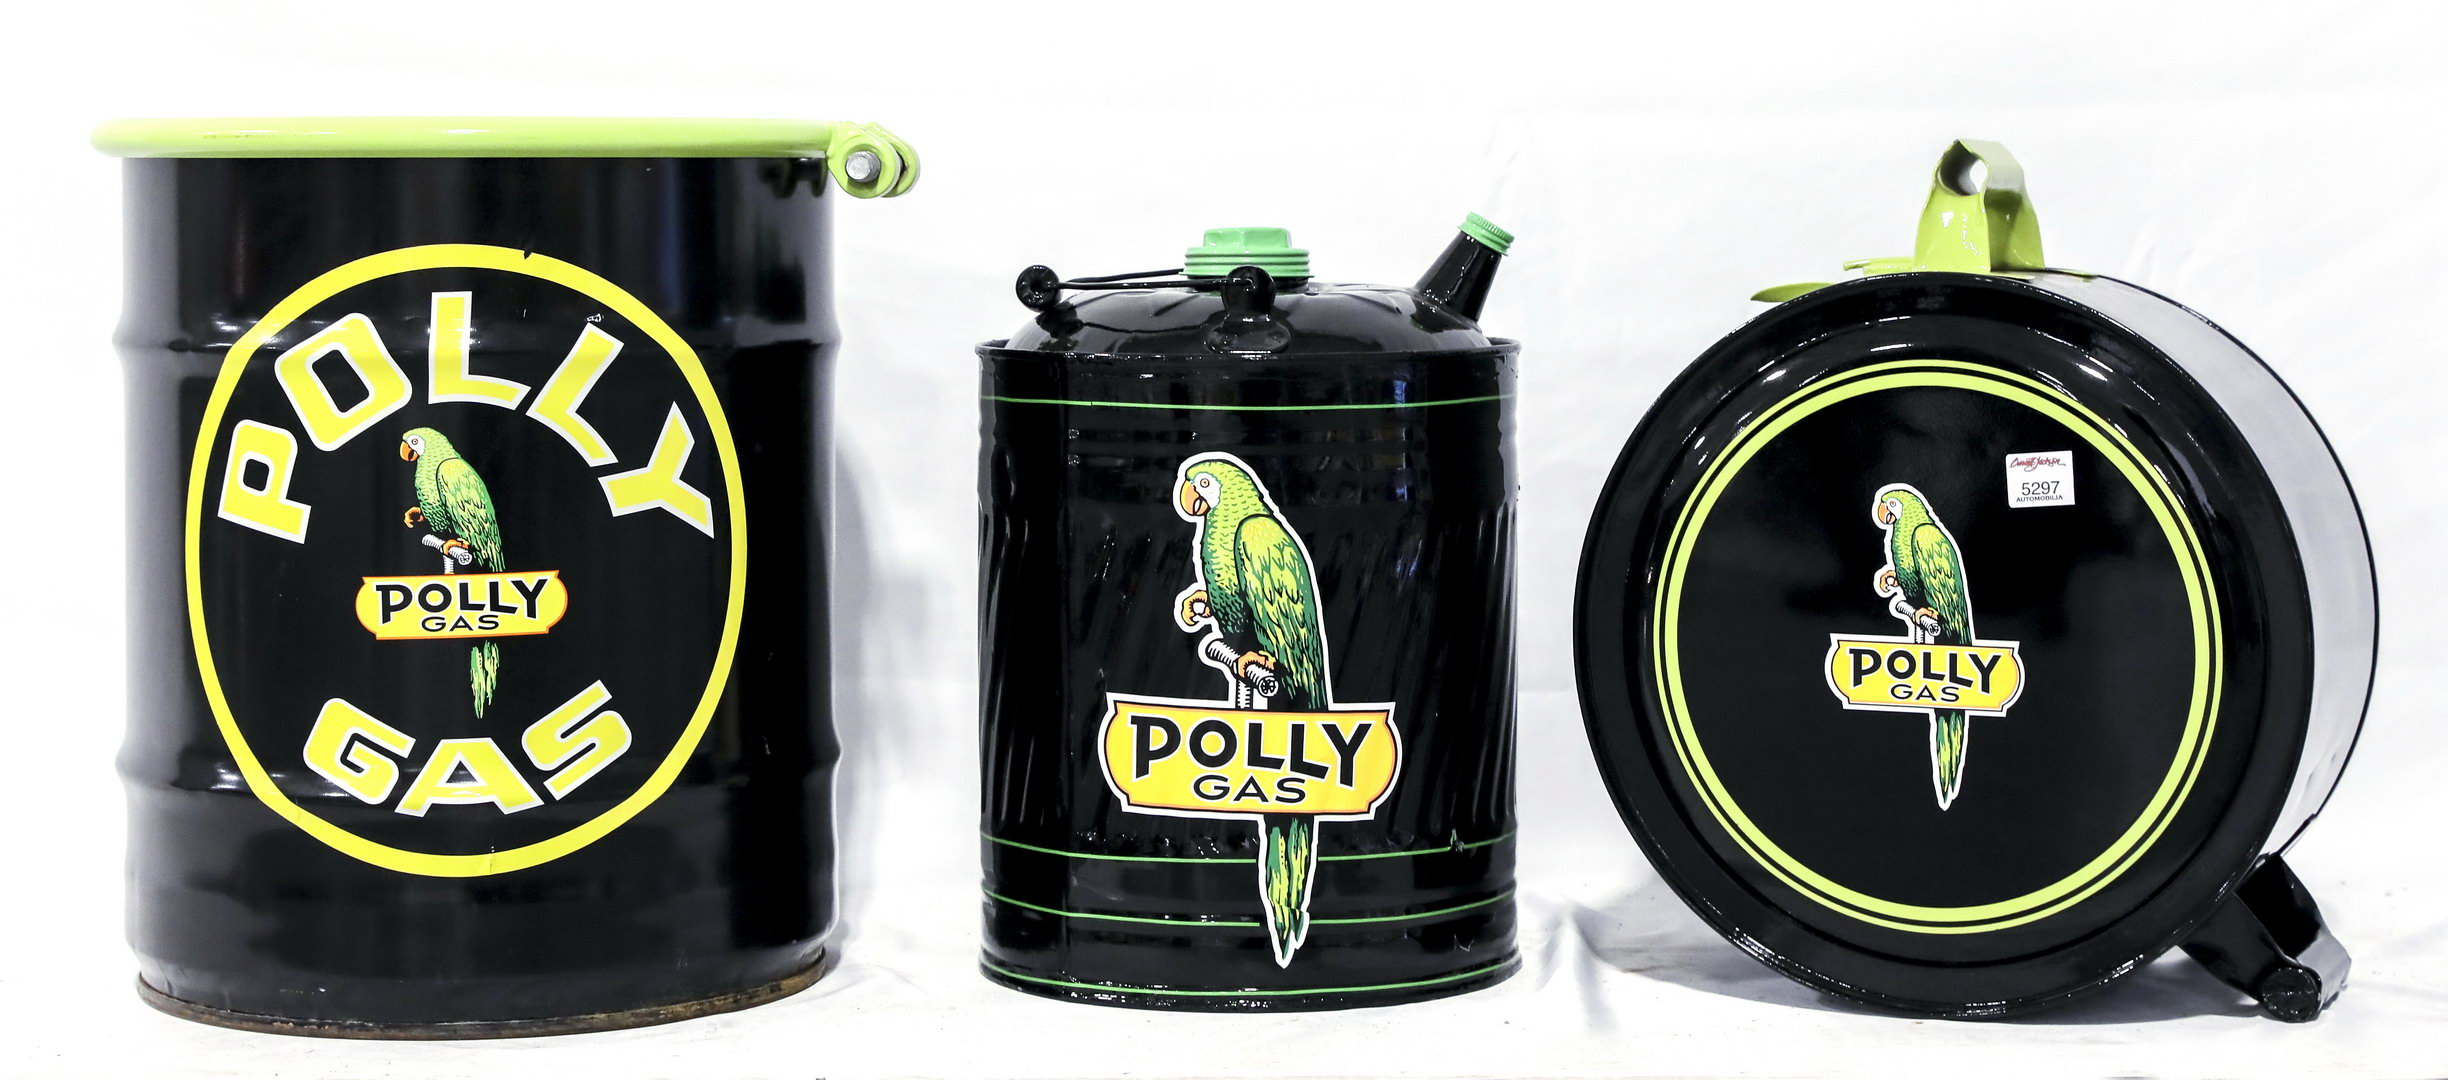 3 High Quality Restored Polly Gas Oil Cans